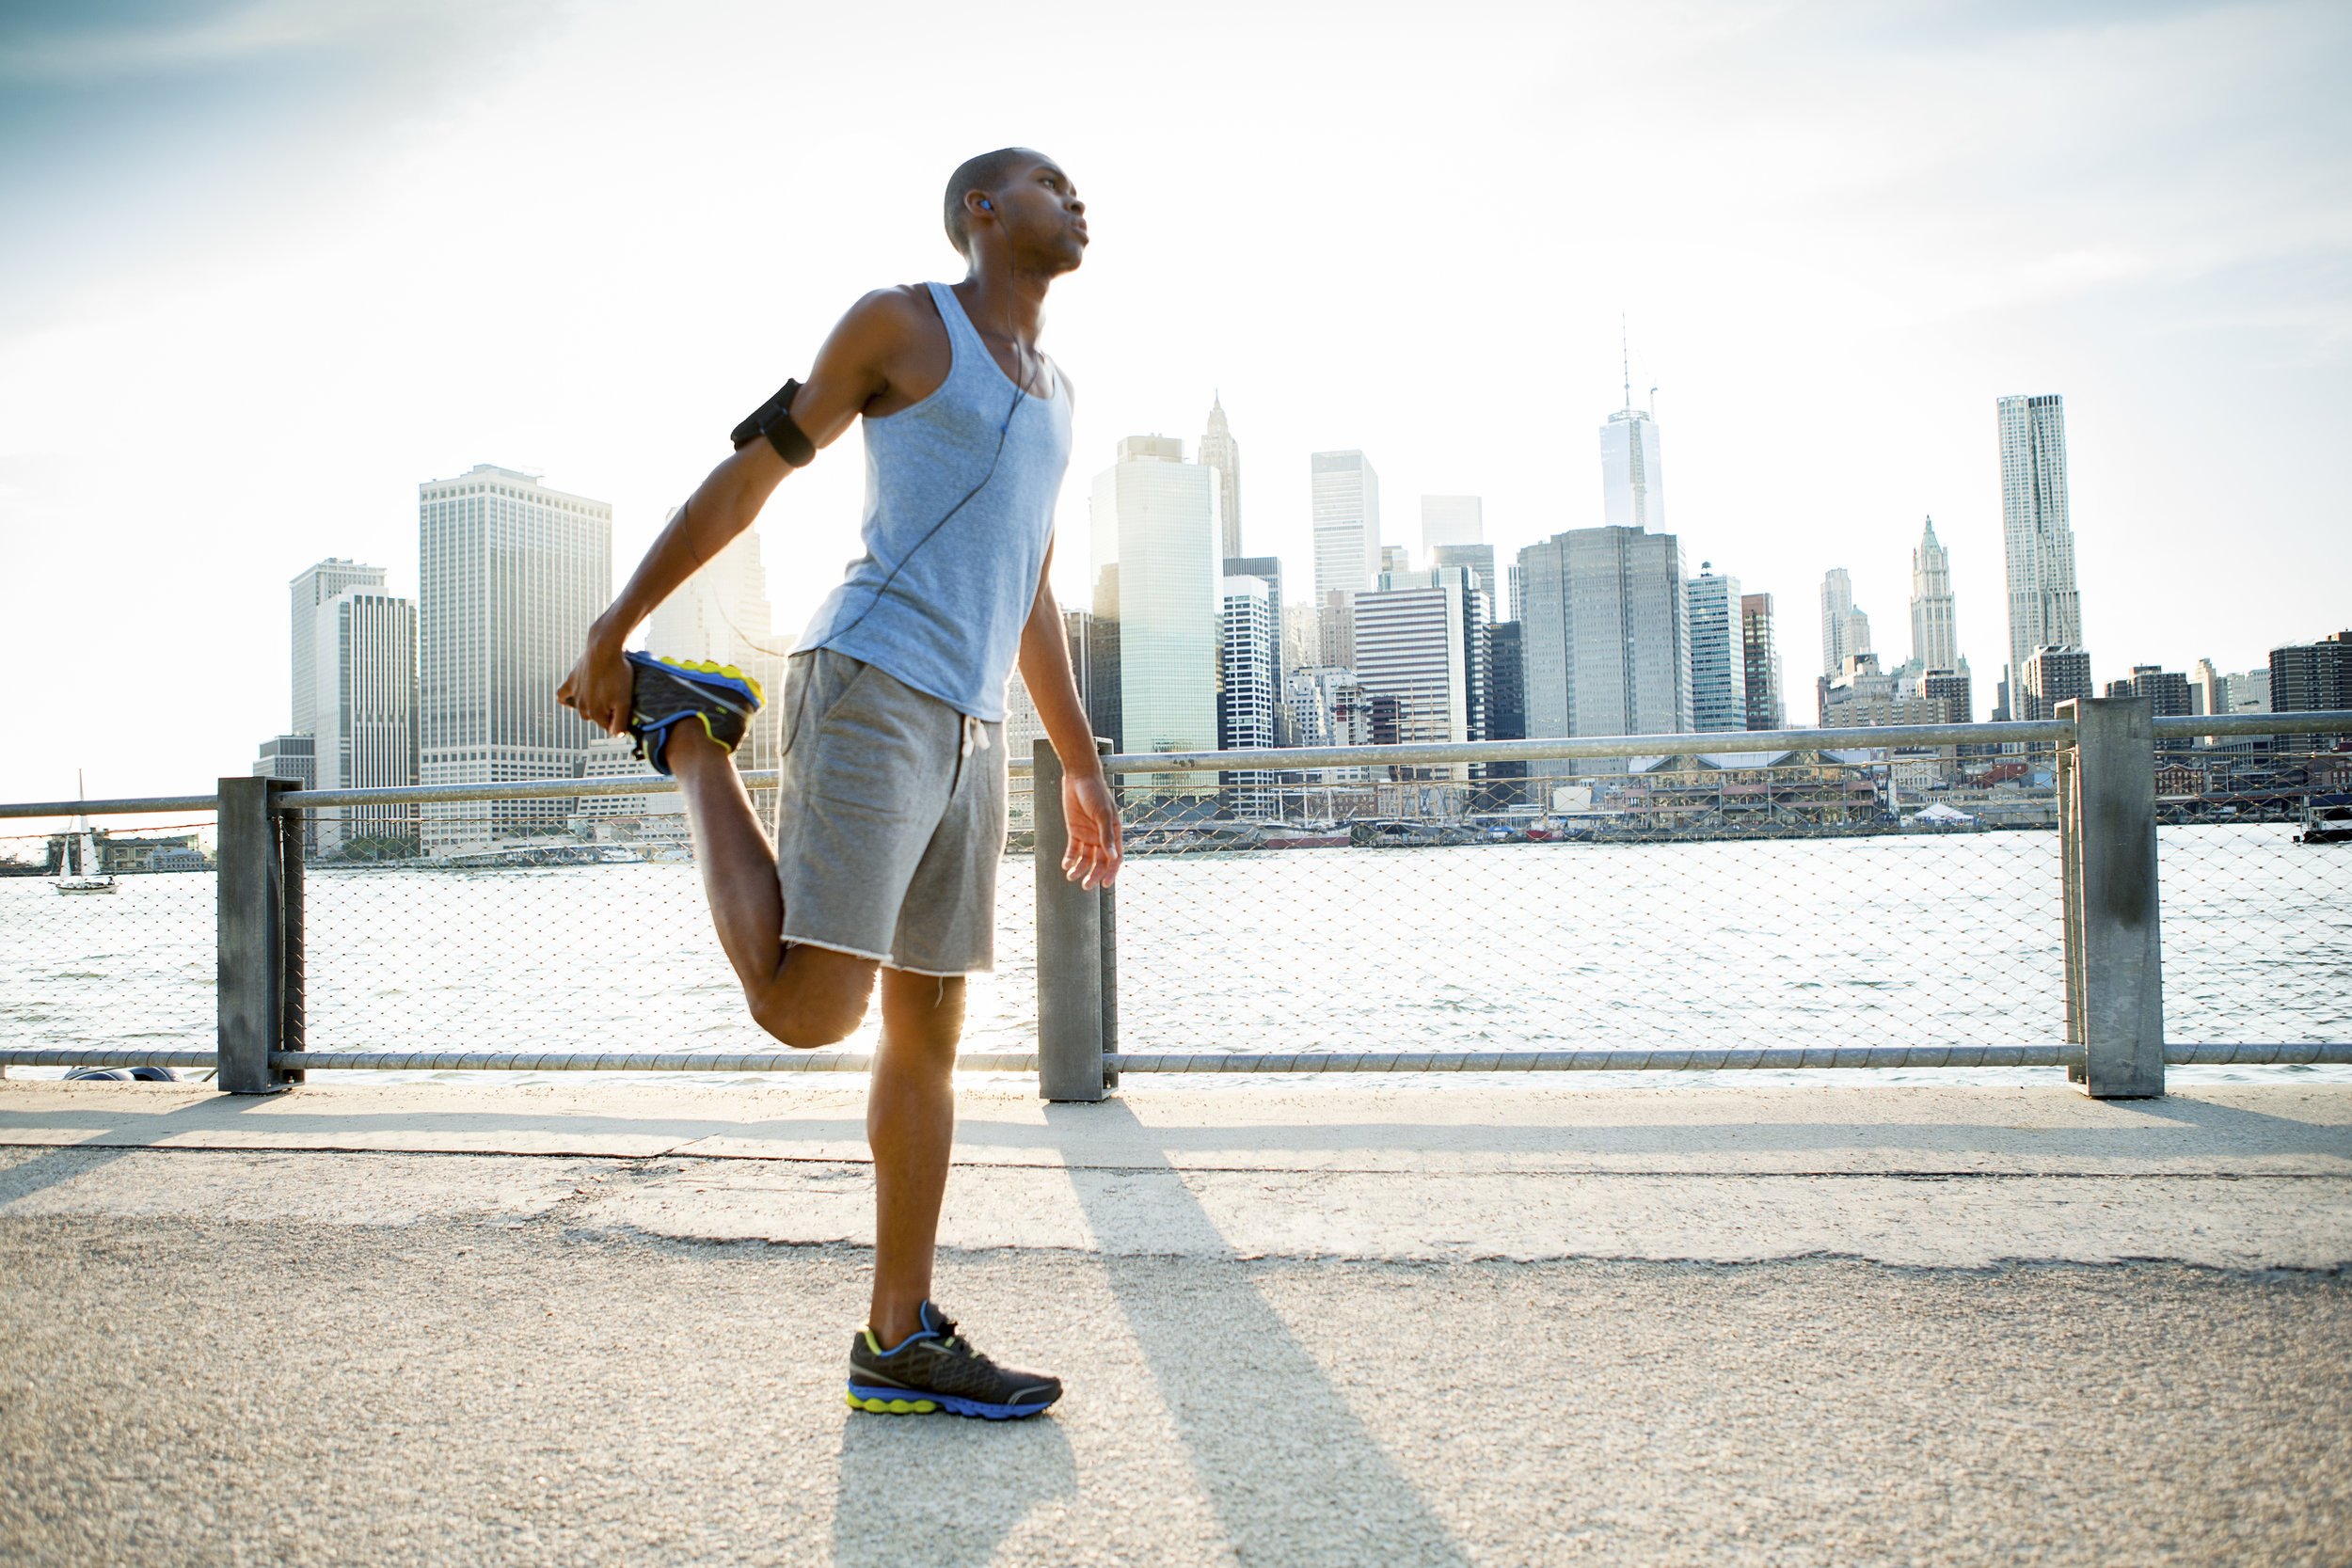 city jogger stretching